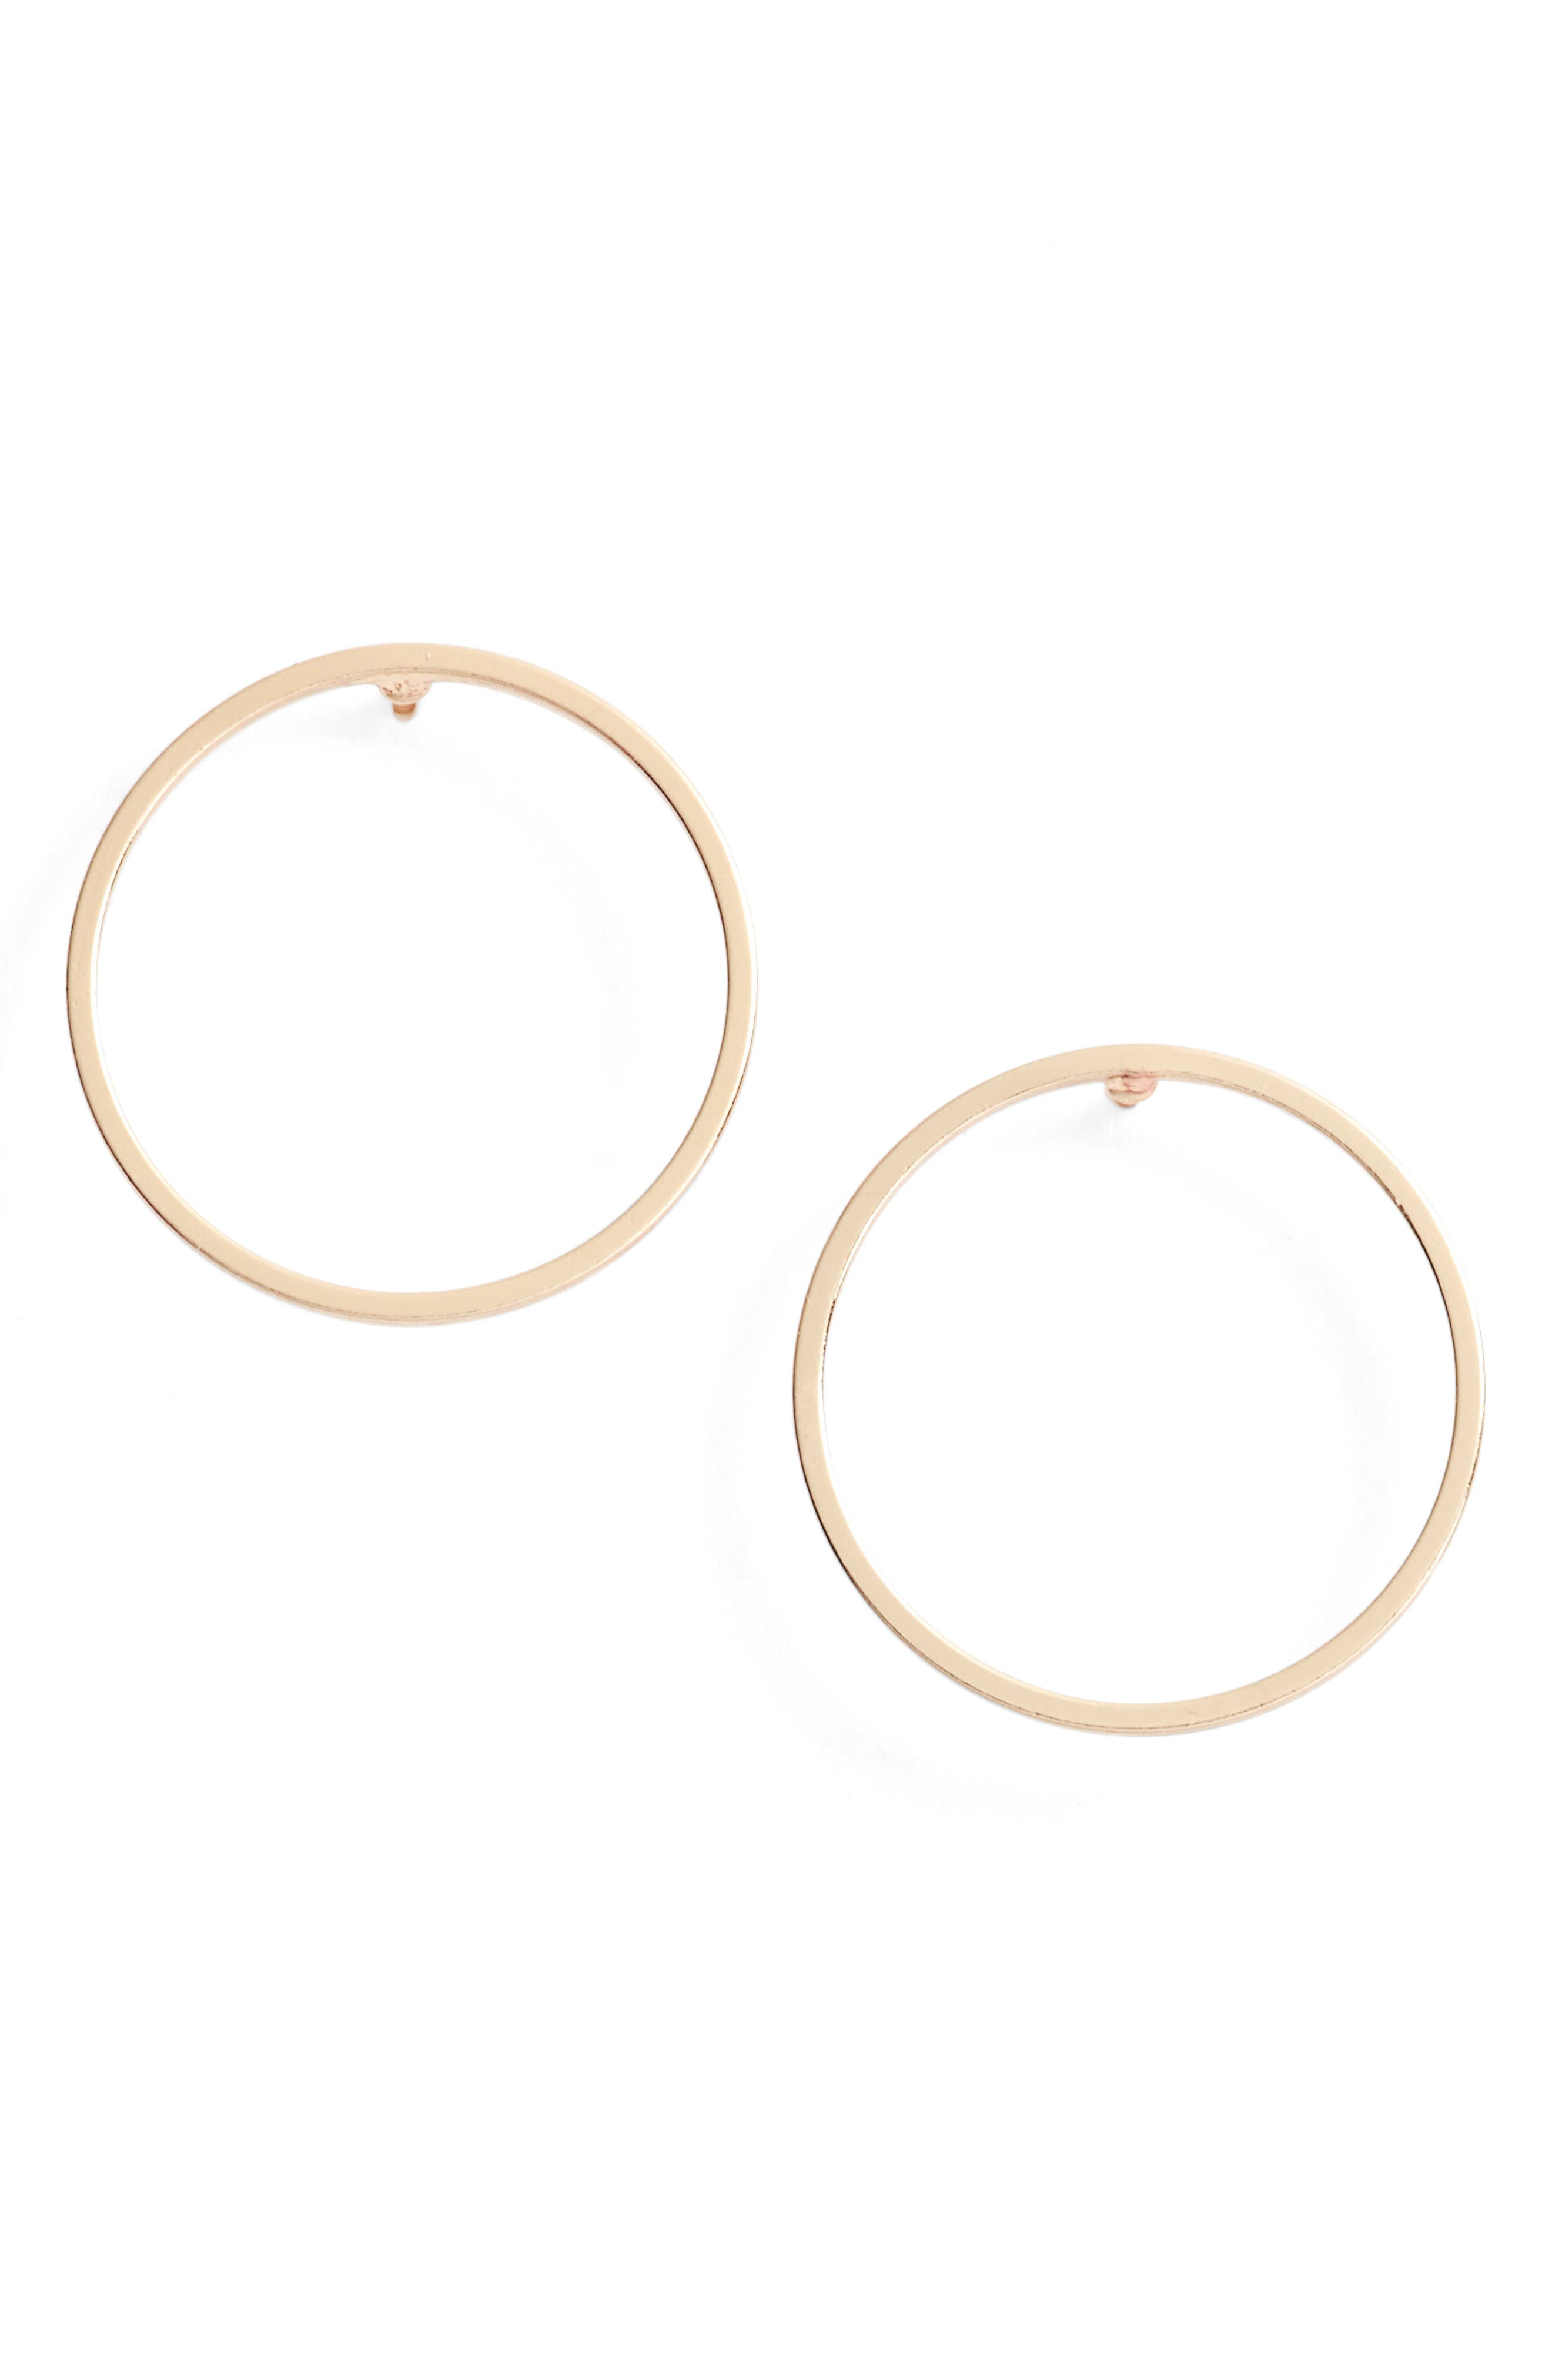 JULES SMITH Juliette Circle Earrings